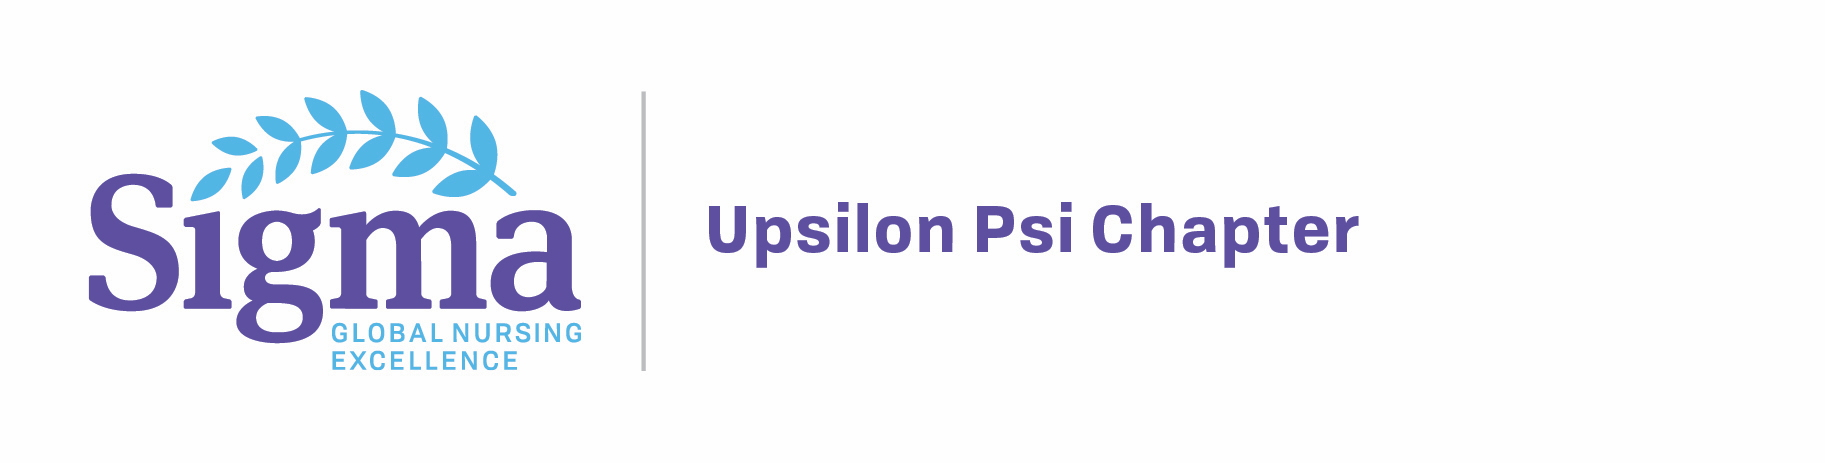 Upsilon Psi Chapter